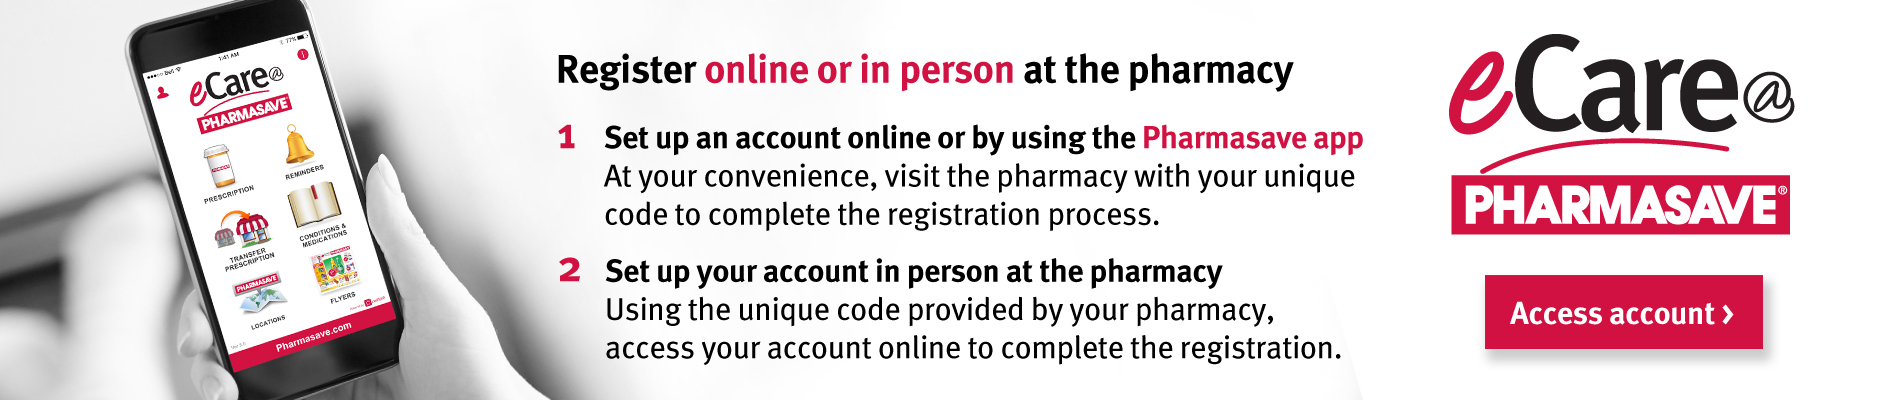 Register for eCare@Pharmasave online or in person at your Pharmasave pharmacy.